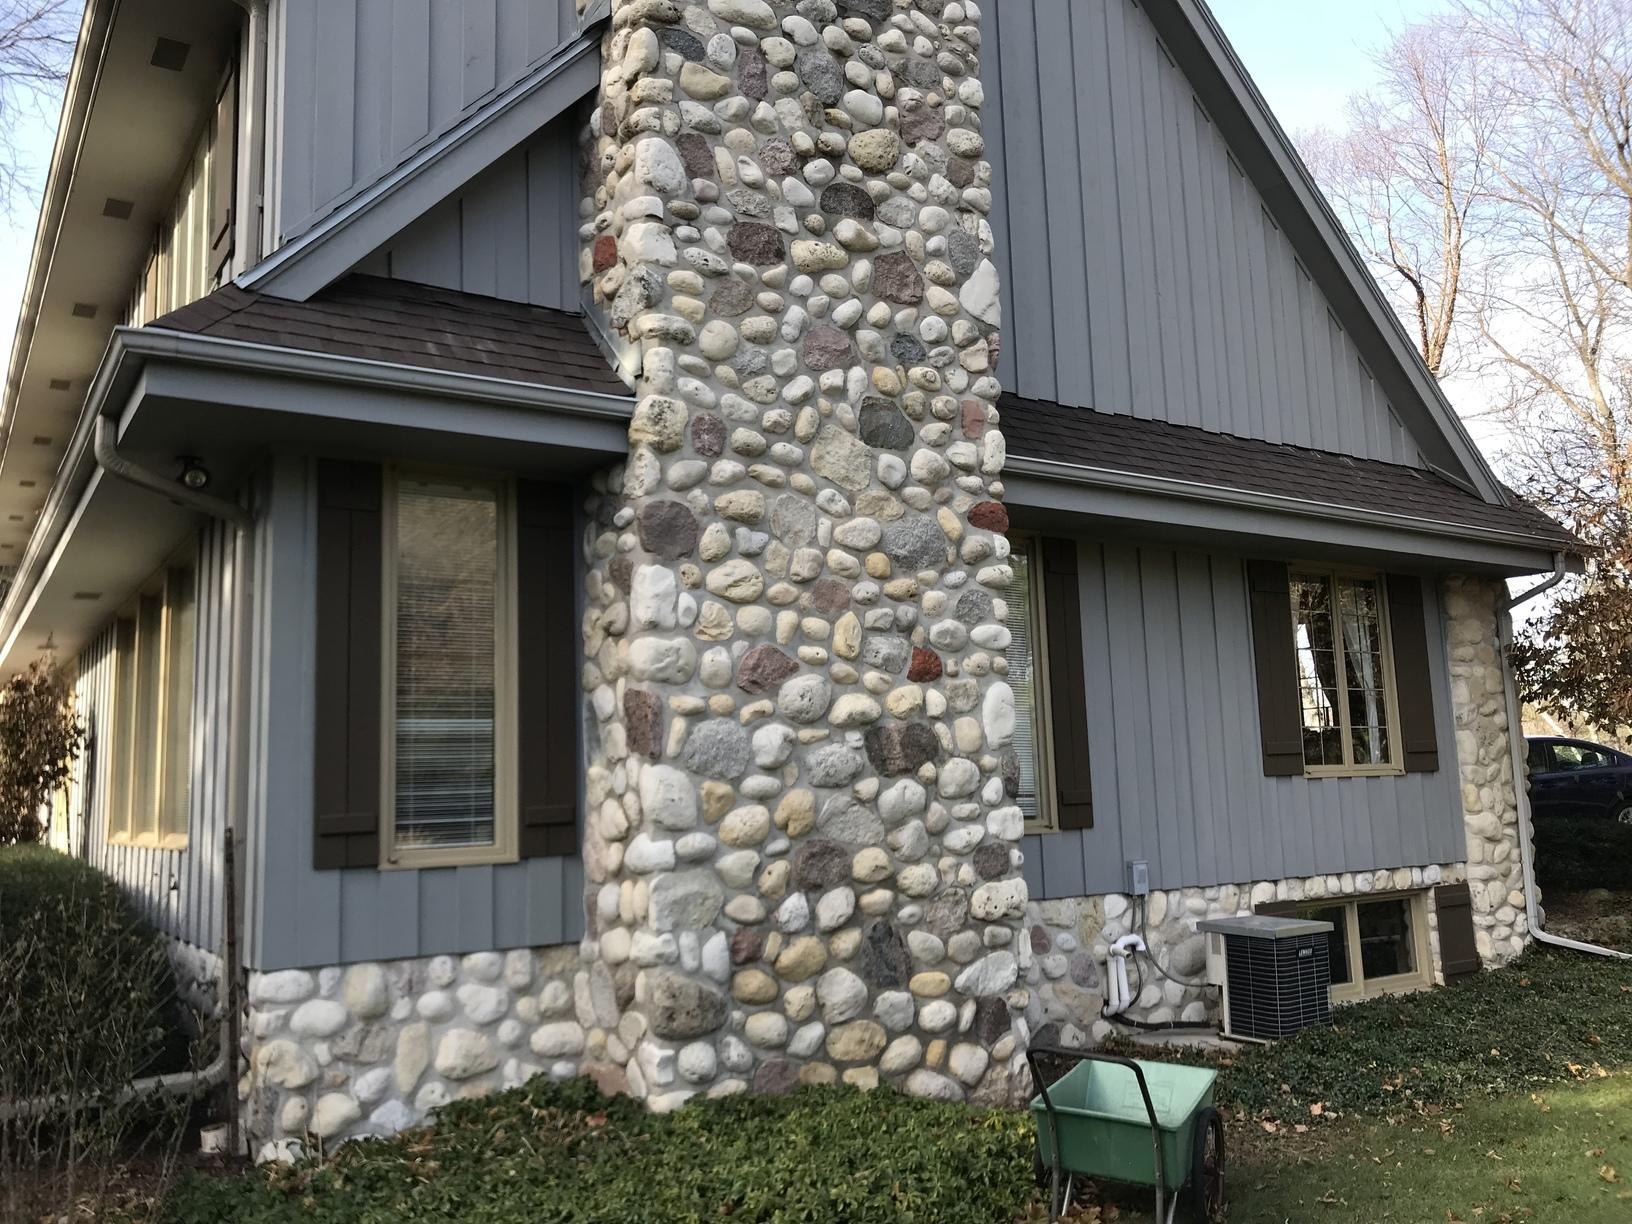 Grey LeafGuard Gutters Installed on a Home in Sheboygan, WI - Before Photo